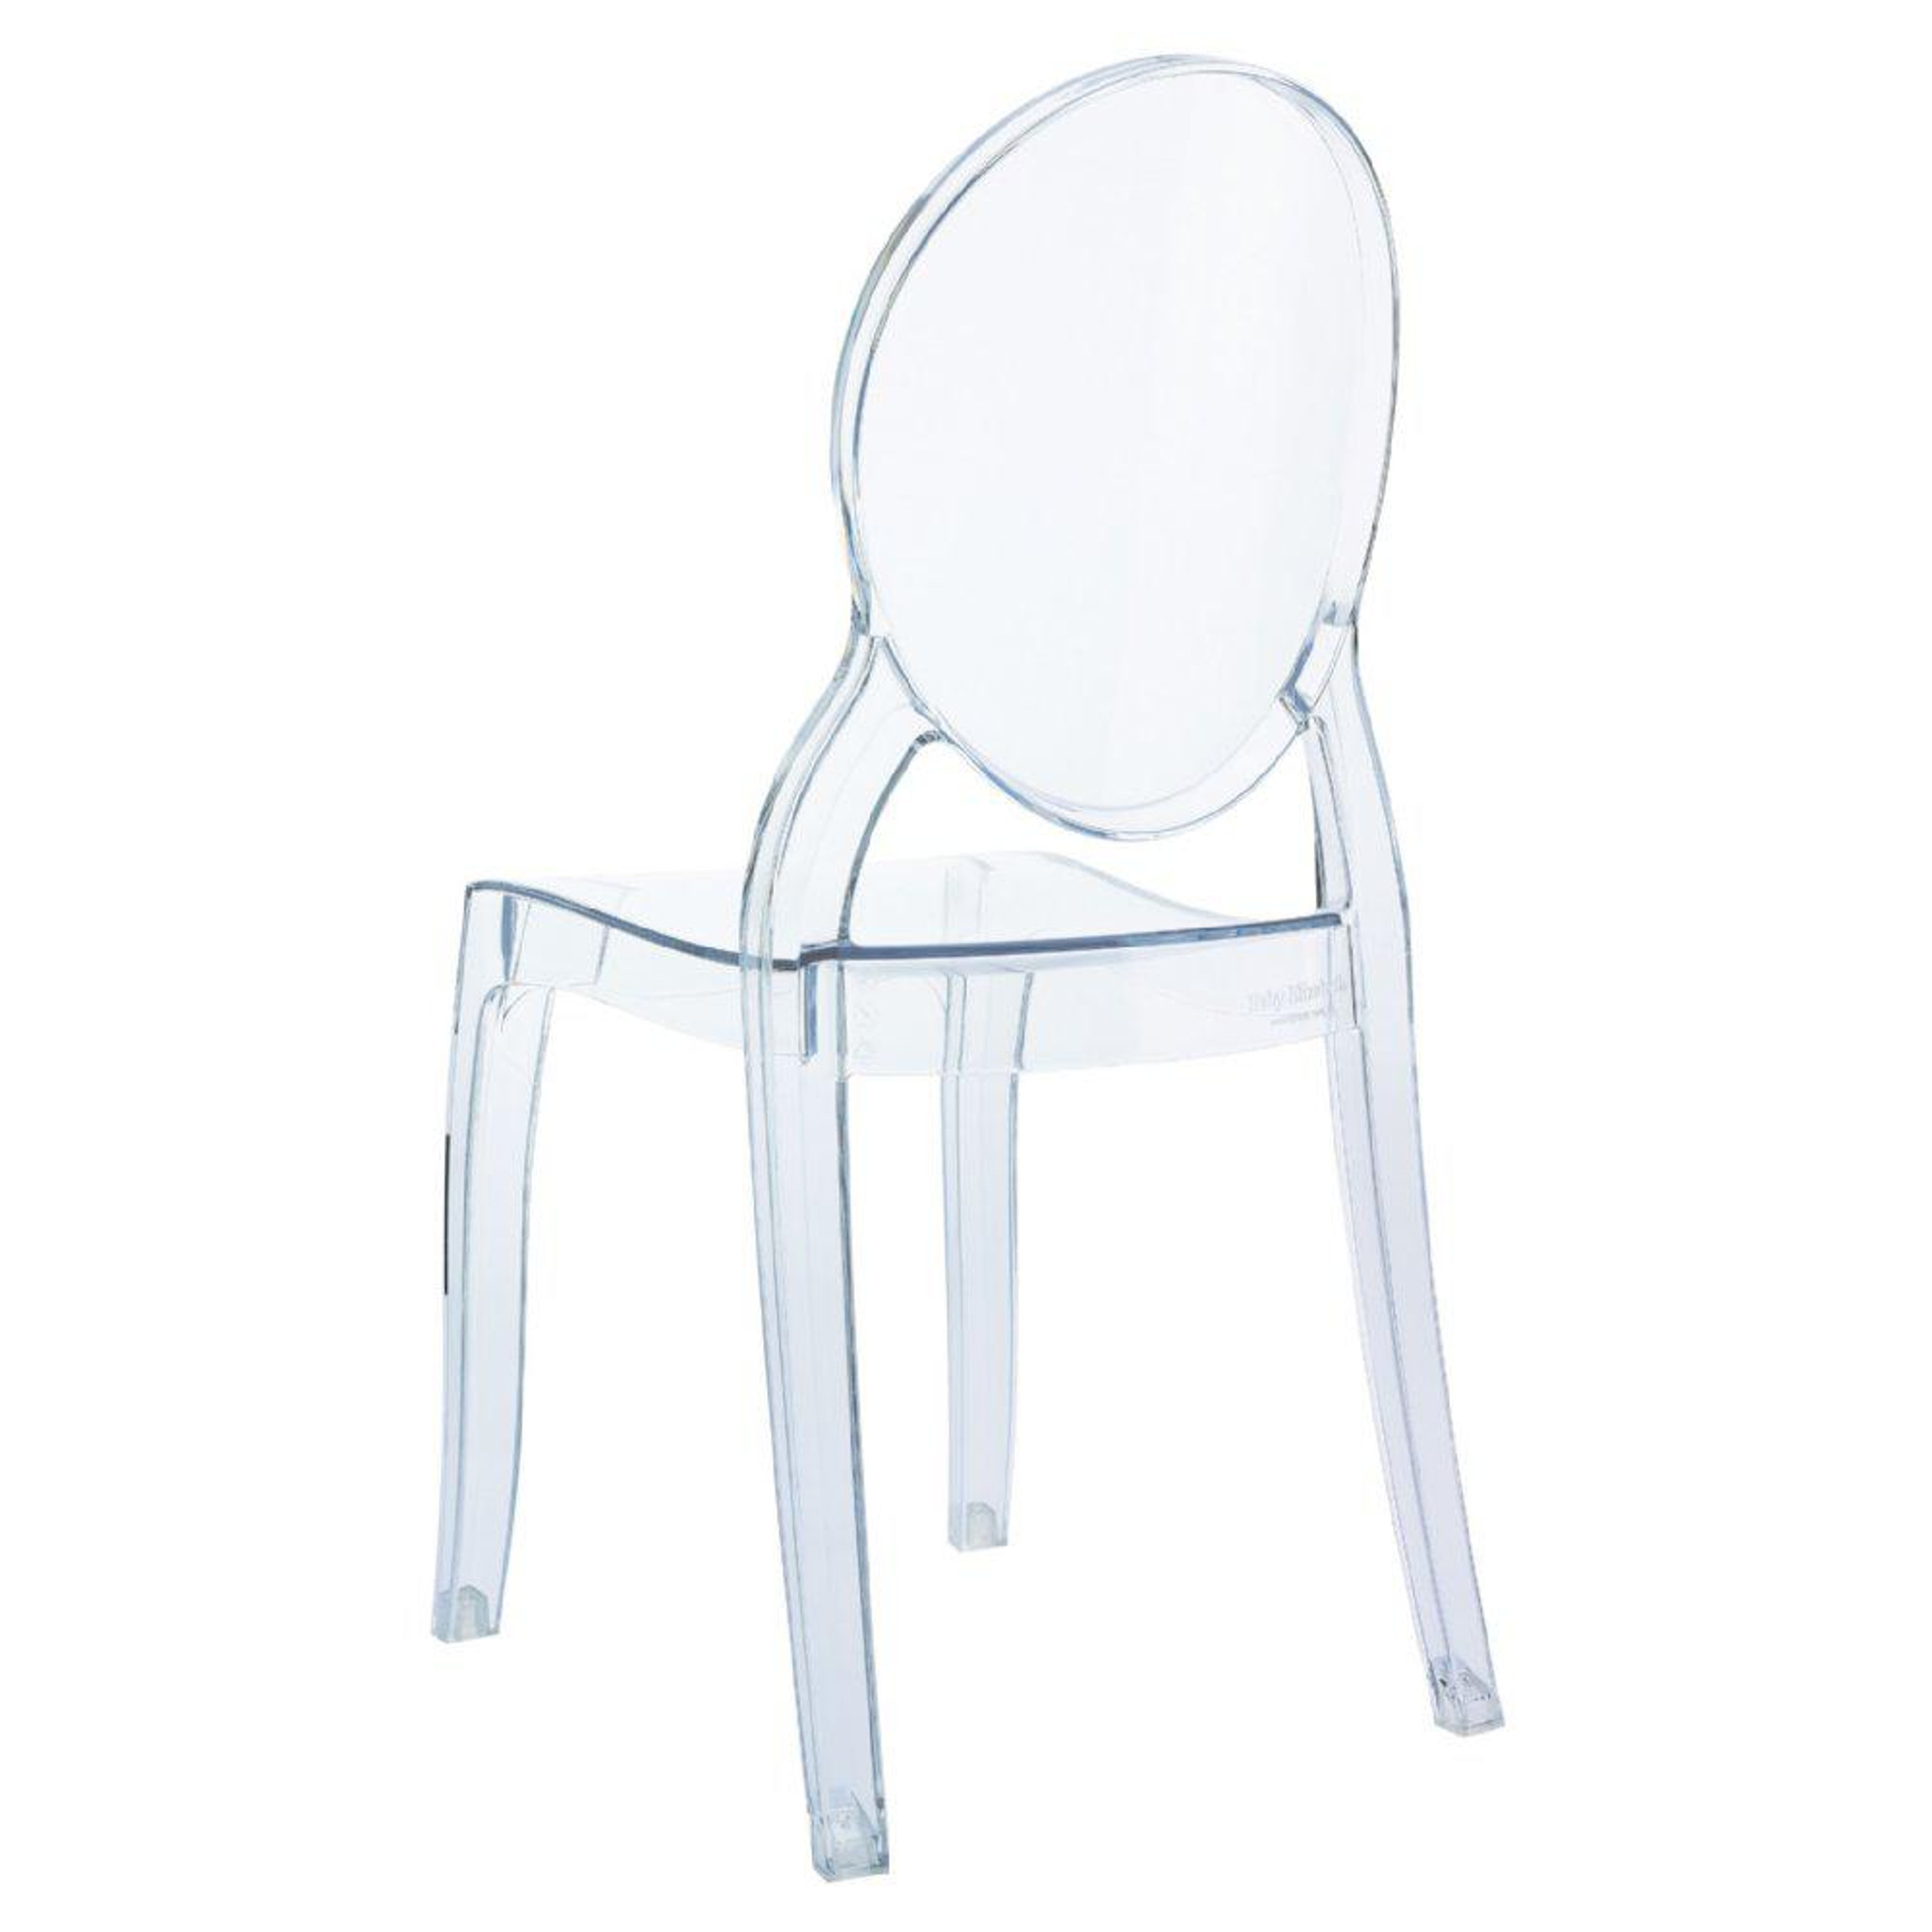 Baby Elizabeth Kids Chair Transparent colors play set table clear acrylic plastic chair stackable ghost